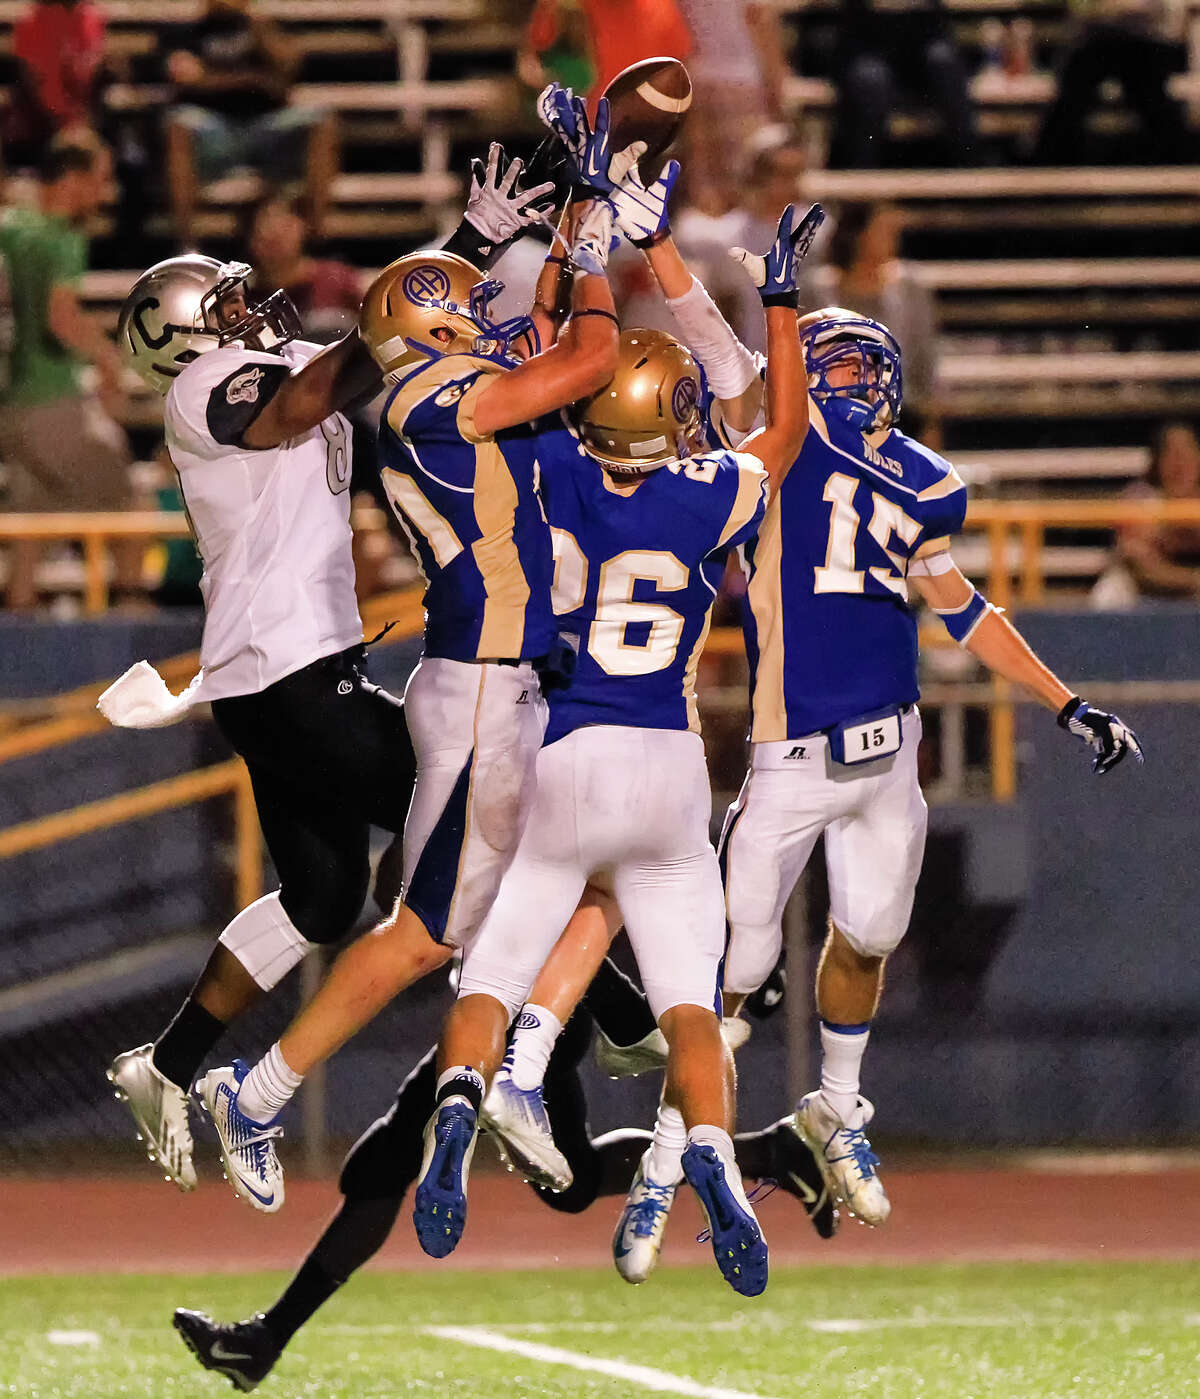 The Alamo Heights defense goes up to deny Clark's R'Manti Bettis (left) the ball during the second half of their game at Orem Stadium on Friday, Sept. 6, 2013. Alamo Heights beat the Cougars 47-34. MARVIN PFEIFFER/ mpfeiffer@express-news.net